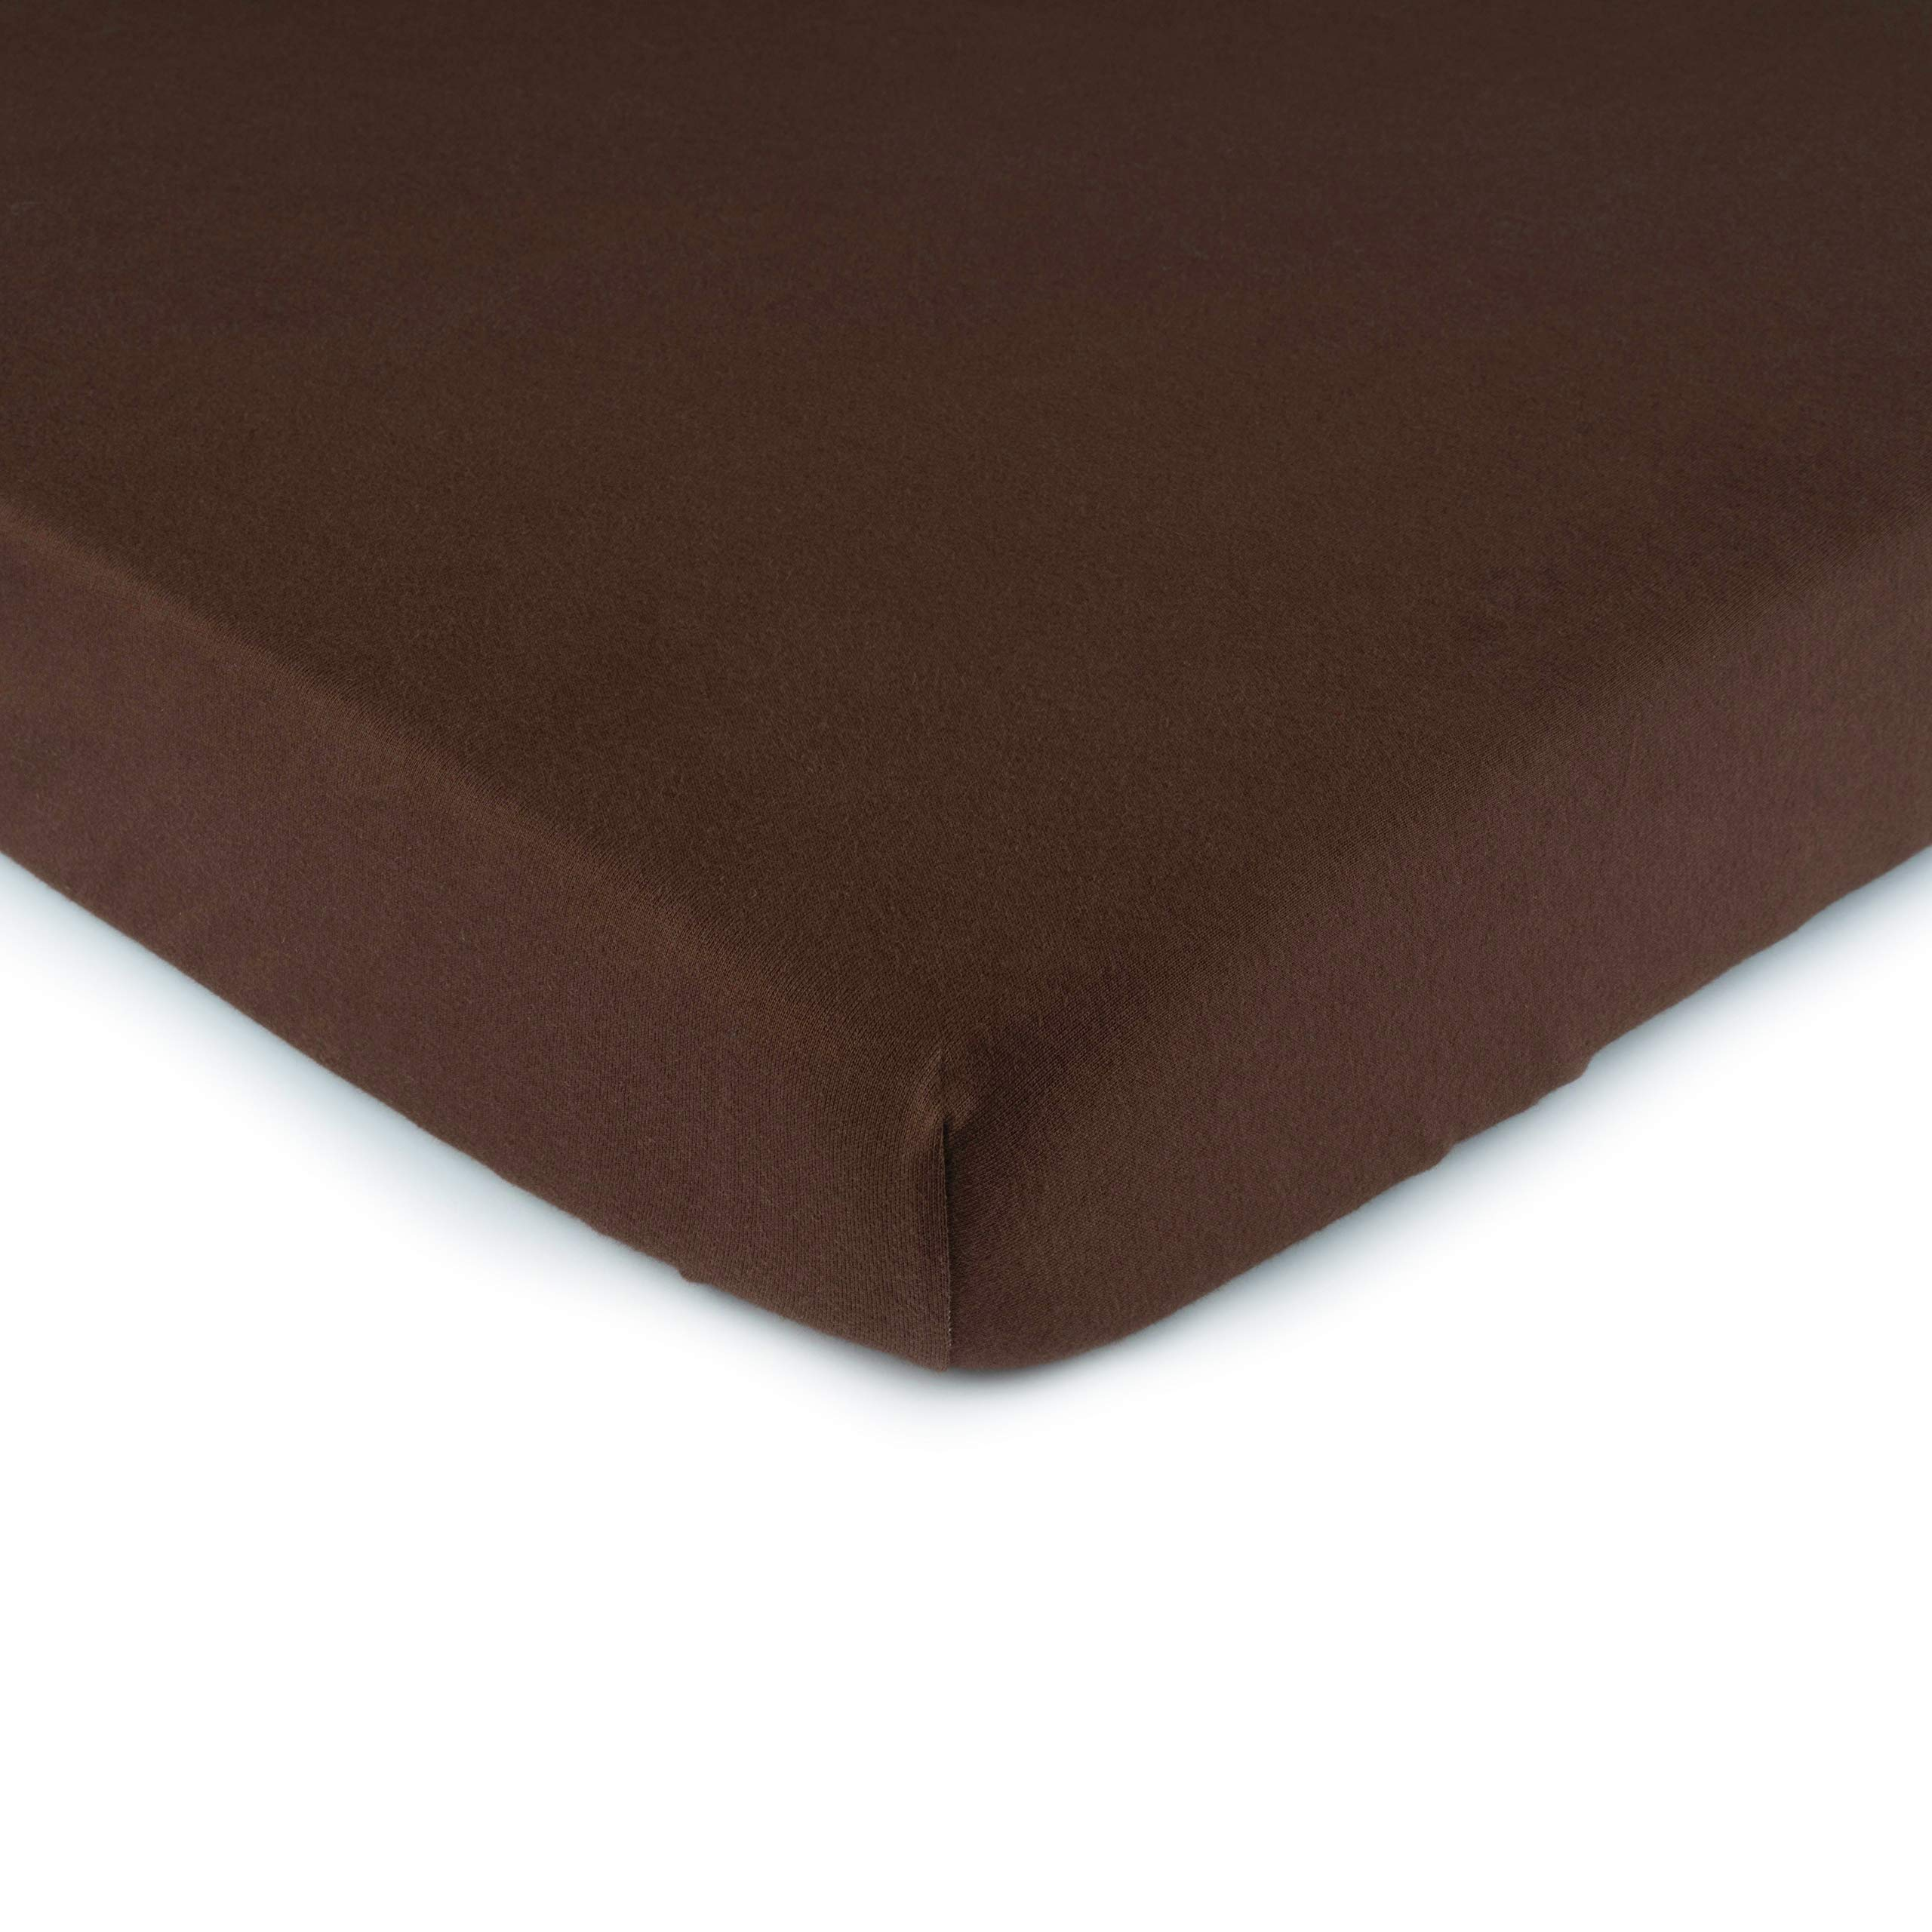 SheetWorld Fitted Cradle Sheet - Solid Brown Jersey Knit - Made In USA by SHEETWORLD.COM